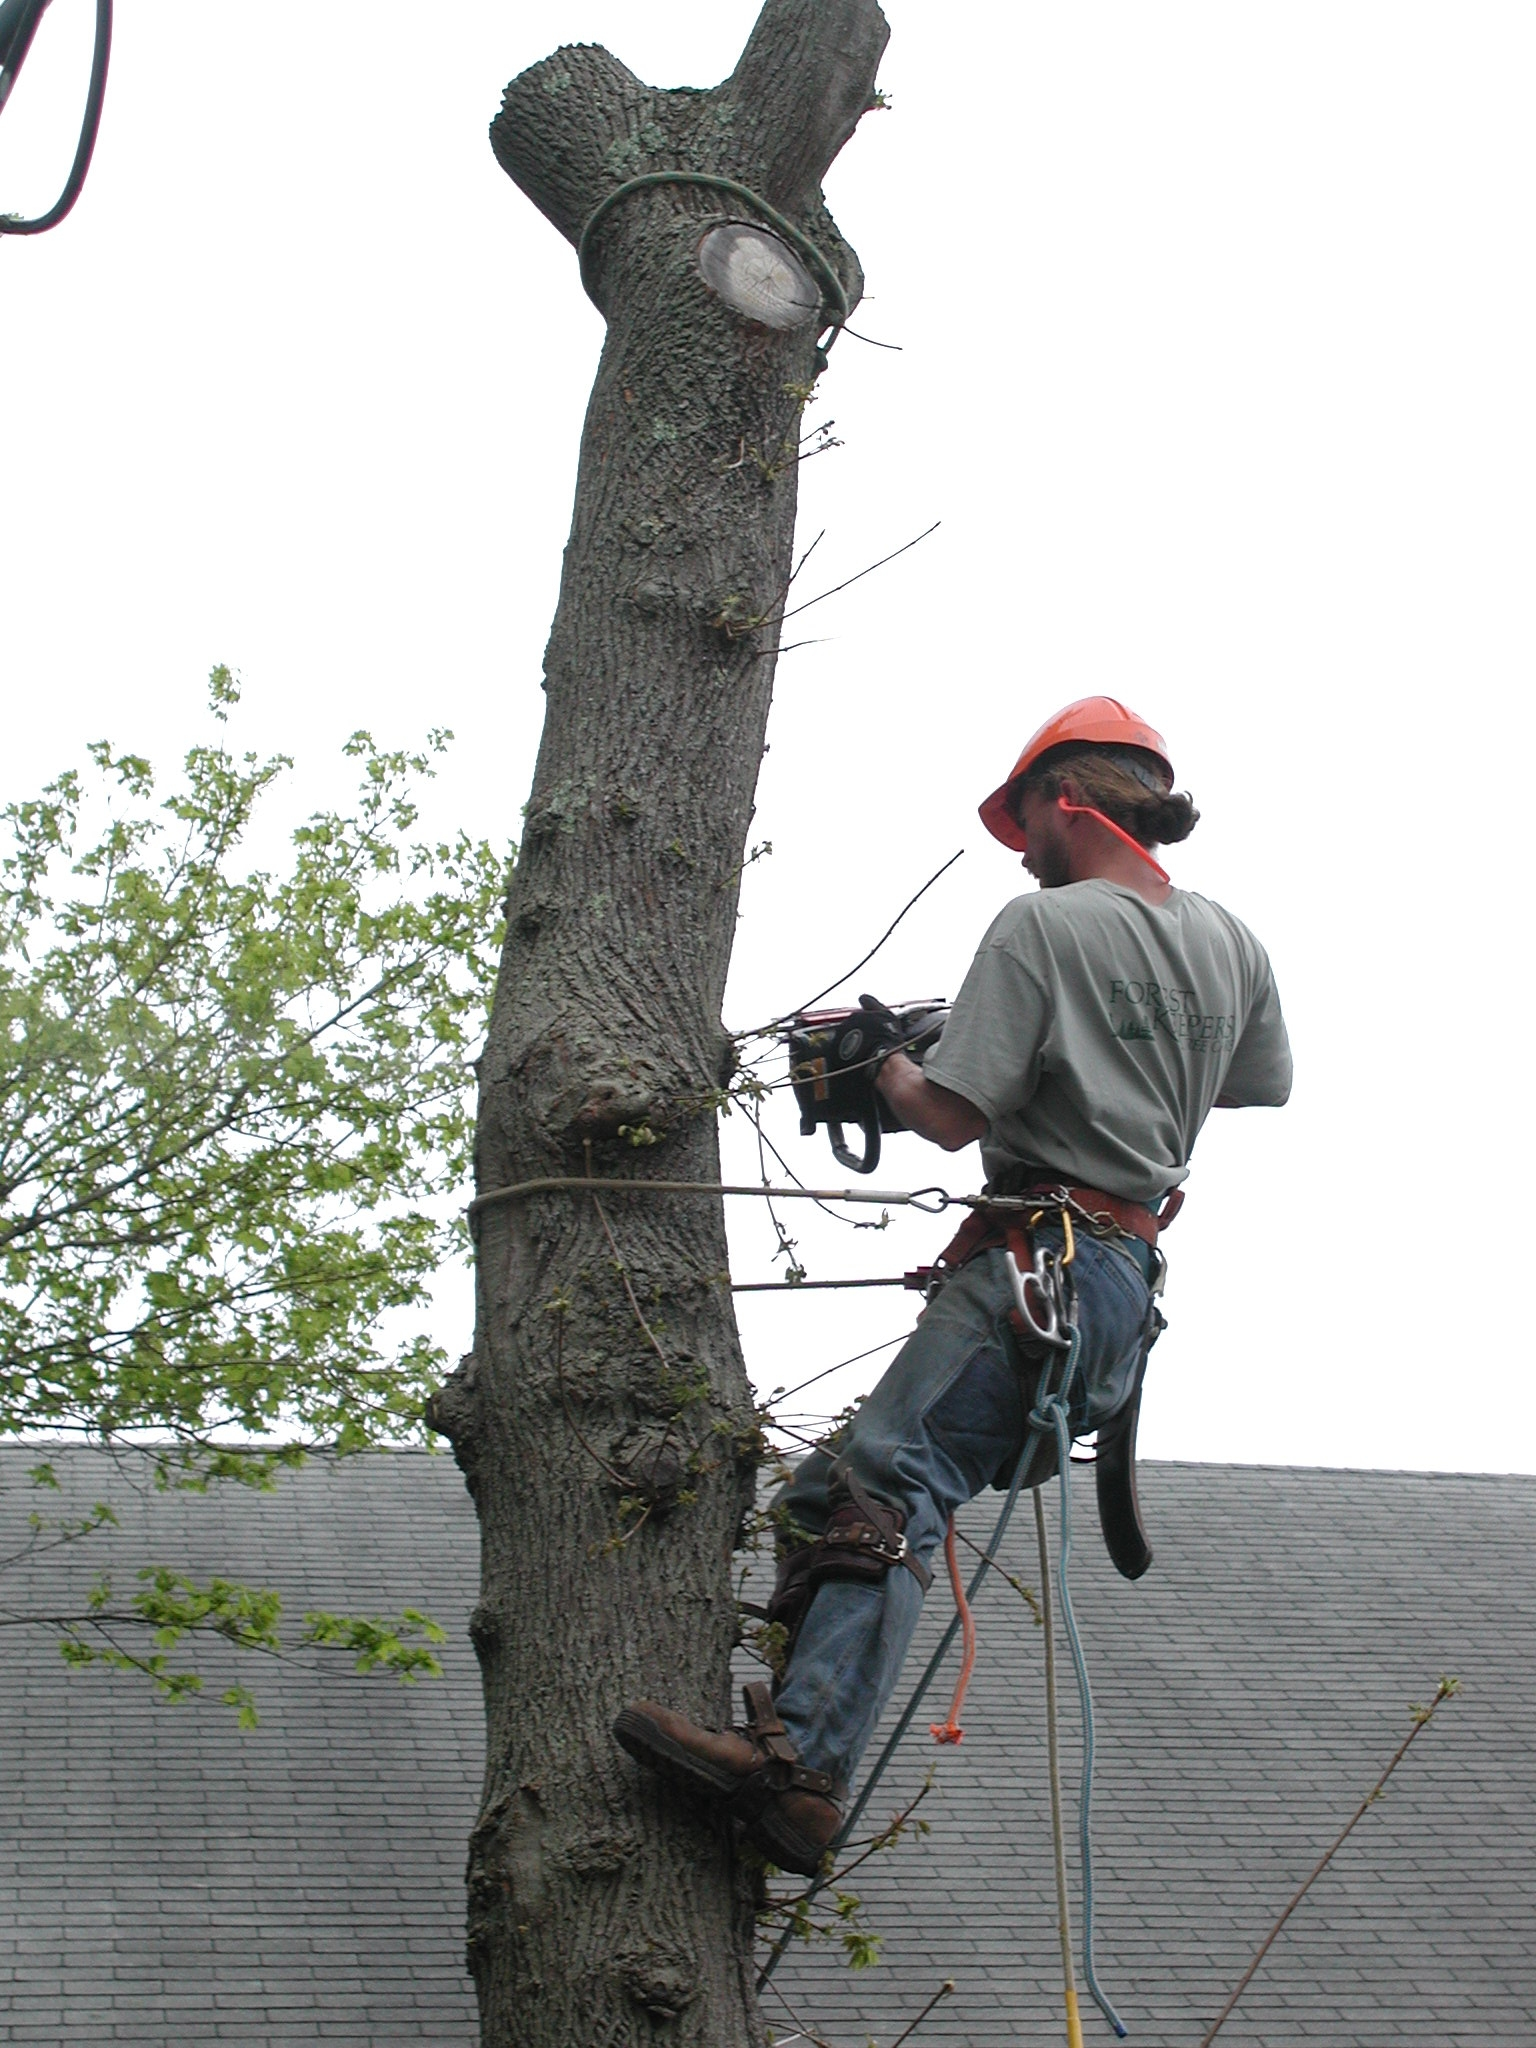 Taking down a large Maple